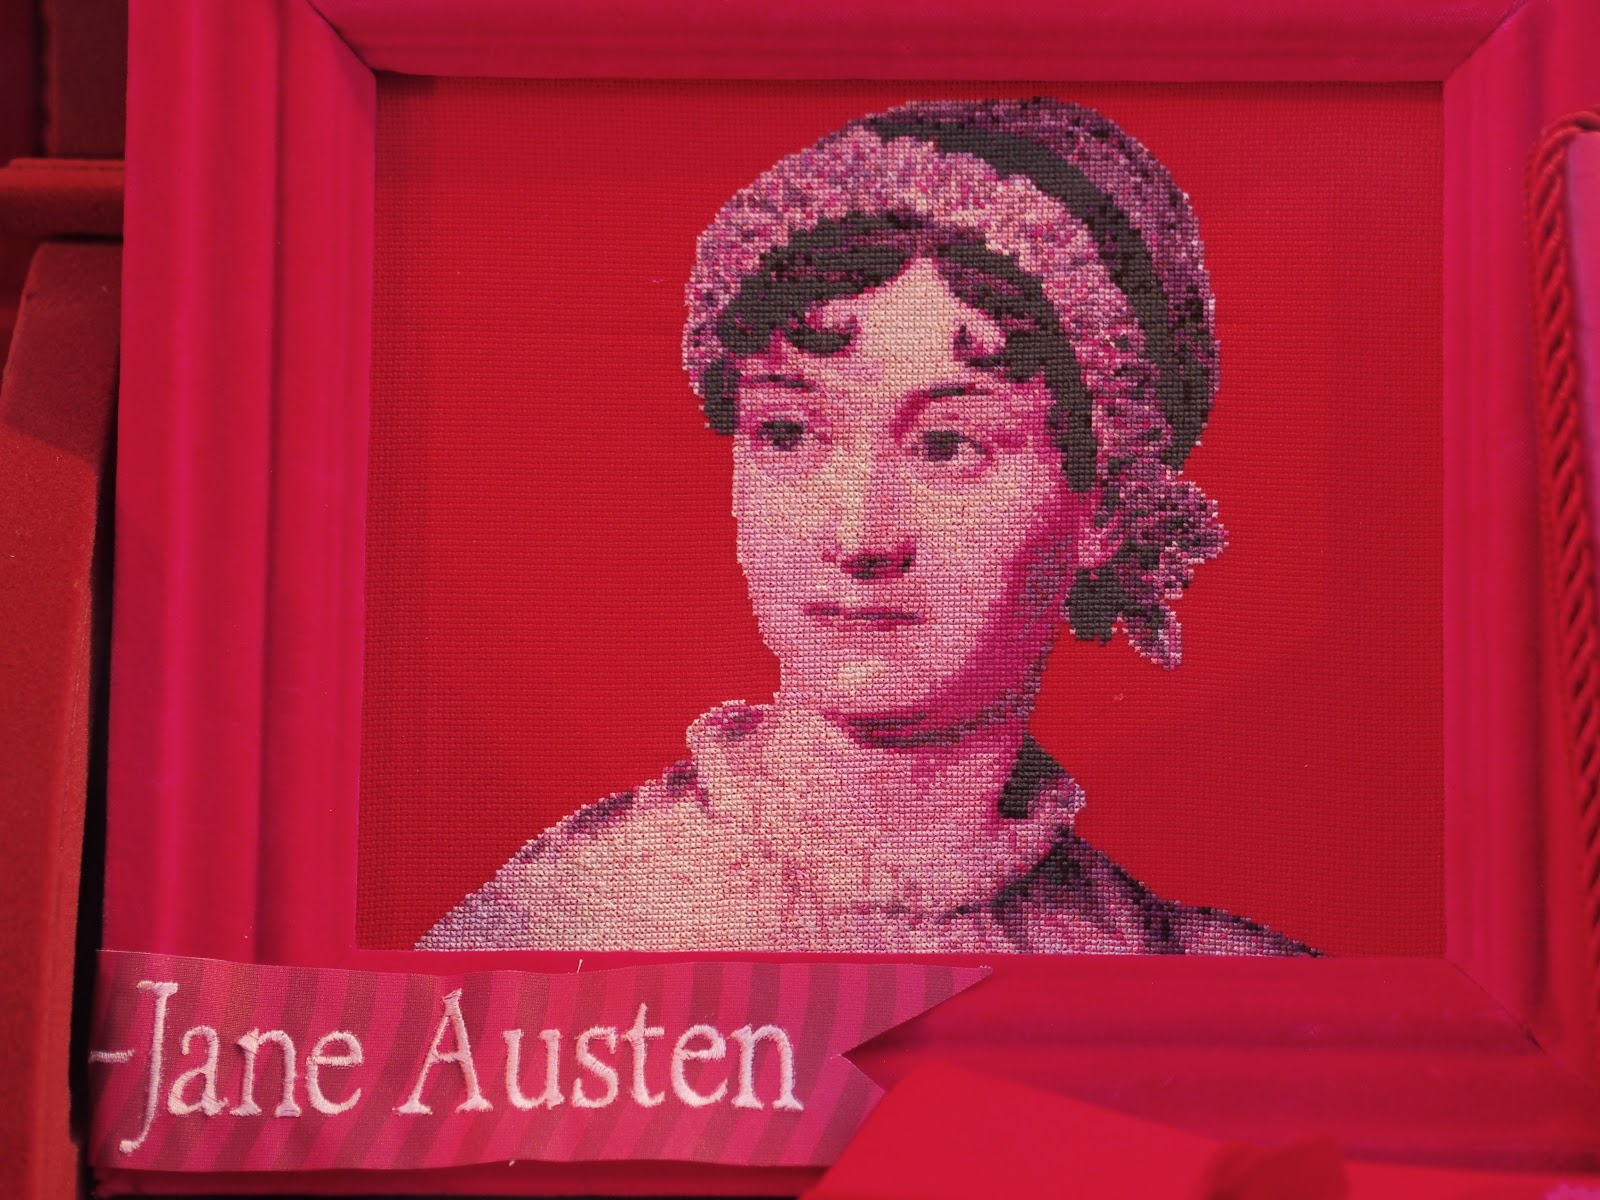 Jane Austen #JaneAusten #bgwindows # #holidaywindows #5thavenuewindows #NYC  #holidays #besttimeoftheyear #nyc ©2014 Nancy Lundebjerg